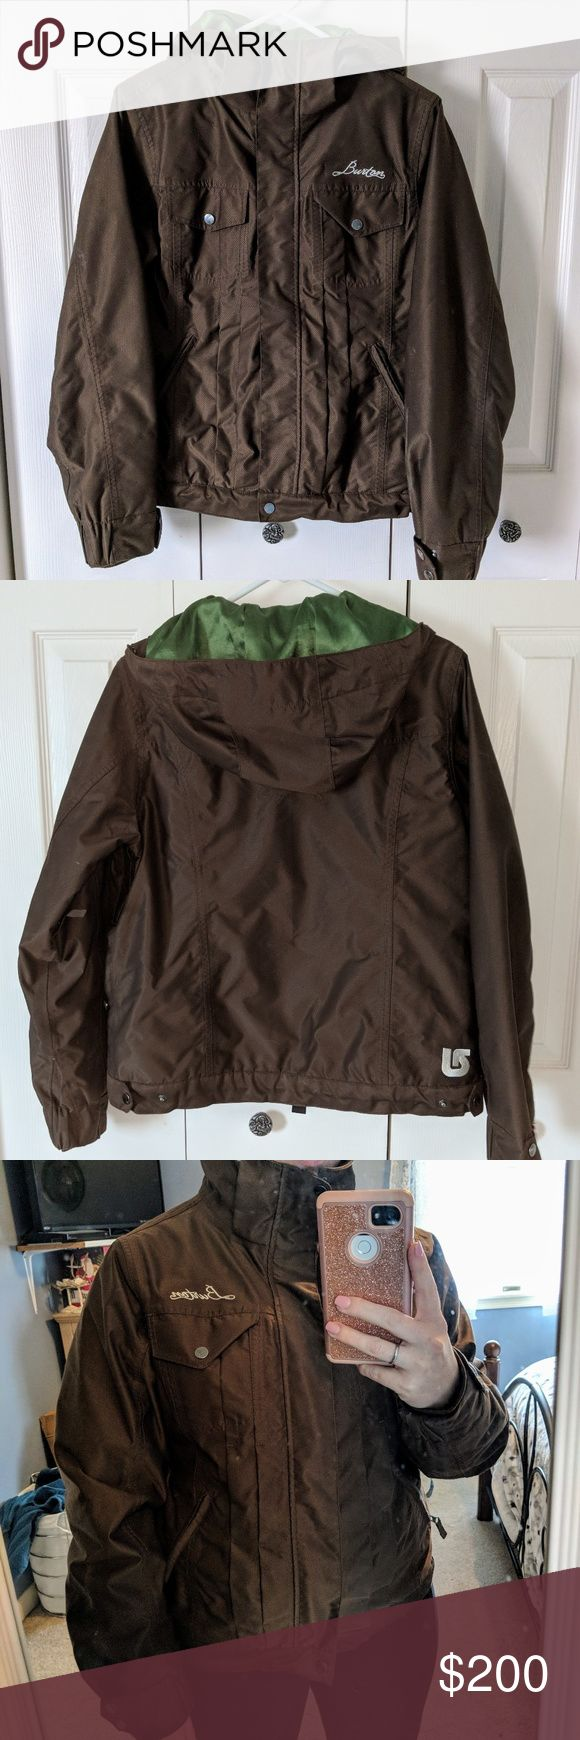 Burton snow jacket coat women's medium Deep brown waterproof outside, with grass green satin lining. Has zippered air vents in armpits. Adjustable sizing around waist and wrists (bungee band also so snow can't come in). No holes or defects! Pockets everywhere haha I just moved down south and no longer need a cold weather coat 😭 comes from a clean smoke free home. Great for snowboarding or skiing... Or in my case, tubing 😂🤣 Burton Jackets & Coats Utility Jackets